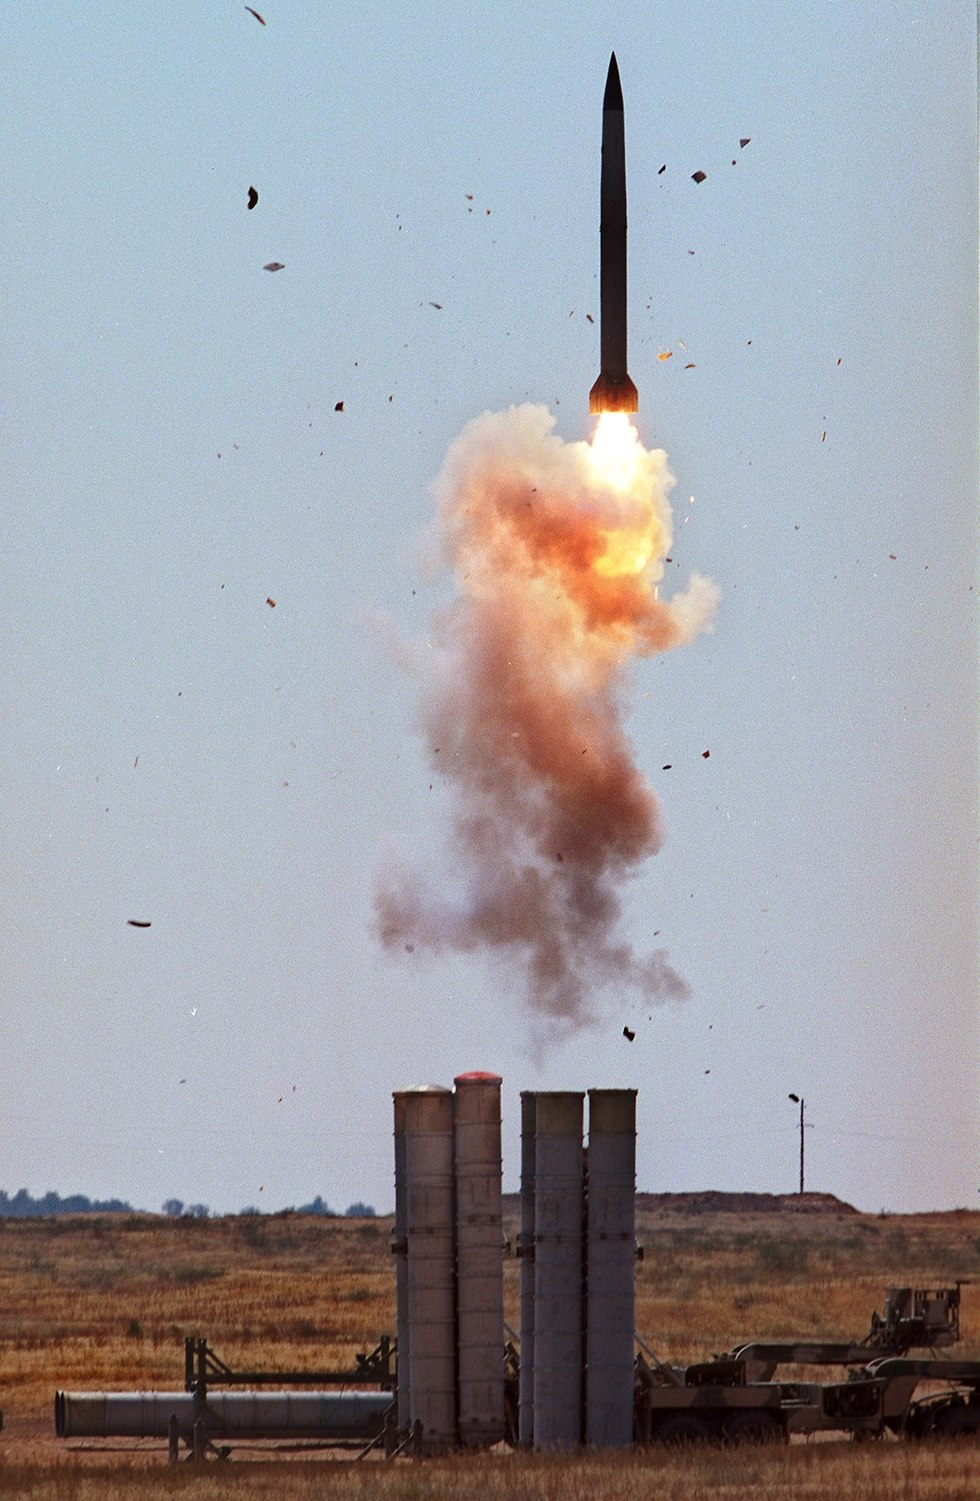 S-300 missile (Photo: AFP)